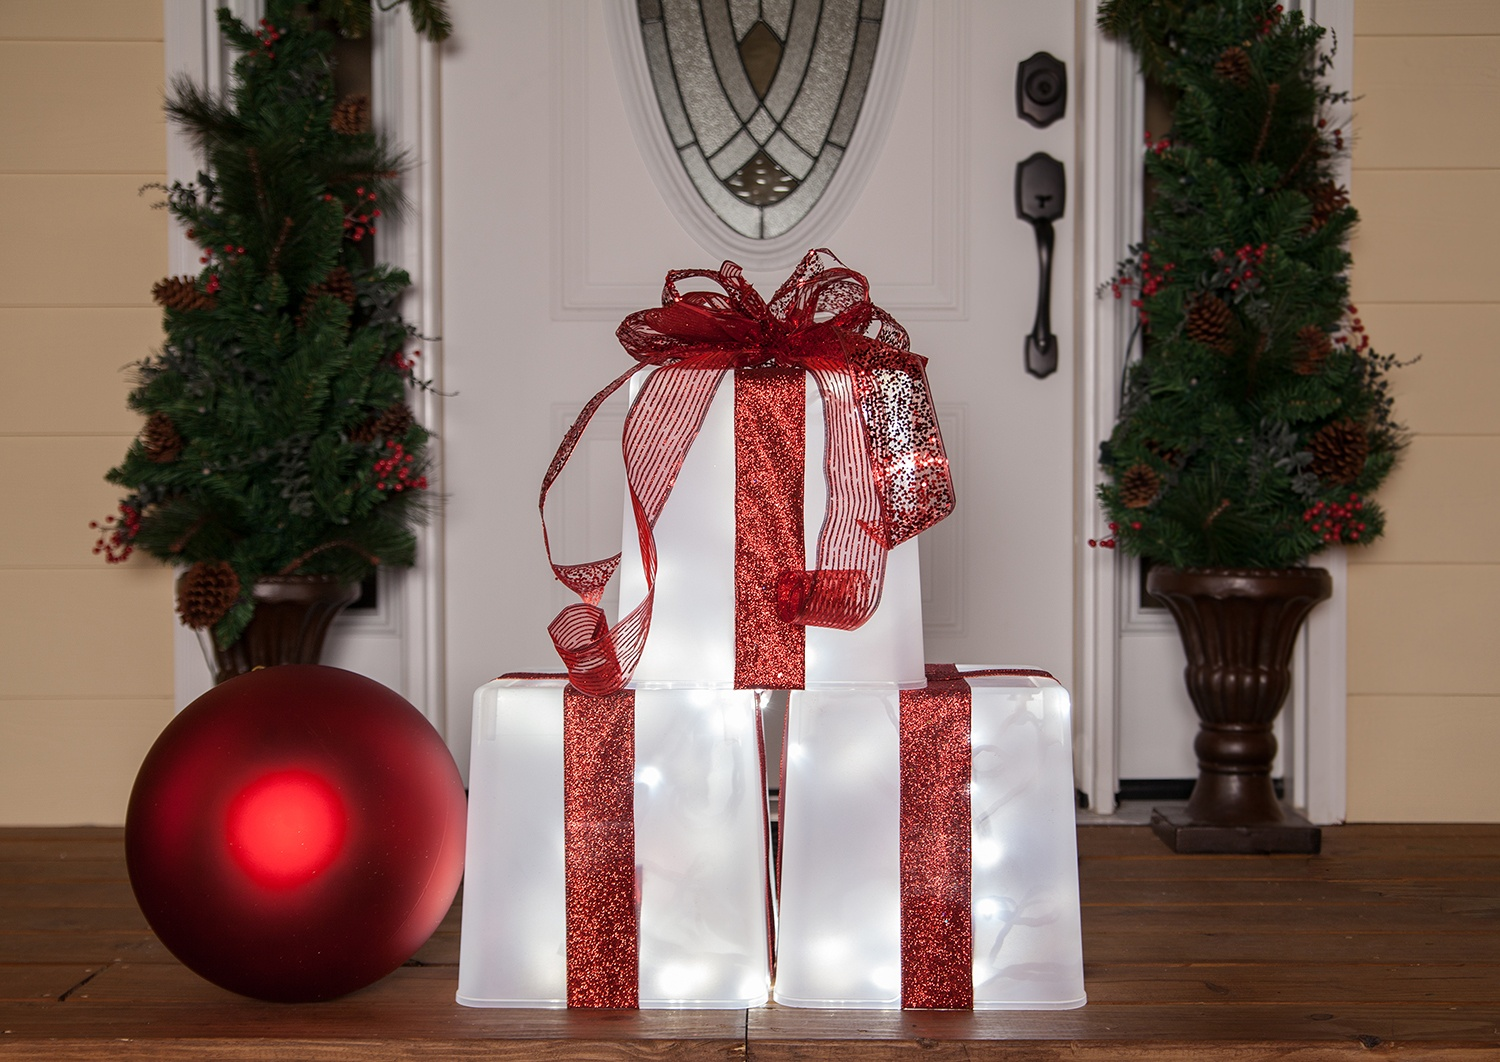 Easy DIY Christmas decoration - create a lighted gift box with a plastic container, ribbon and lights.